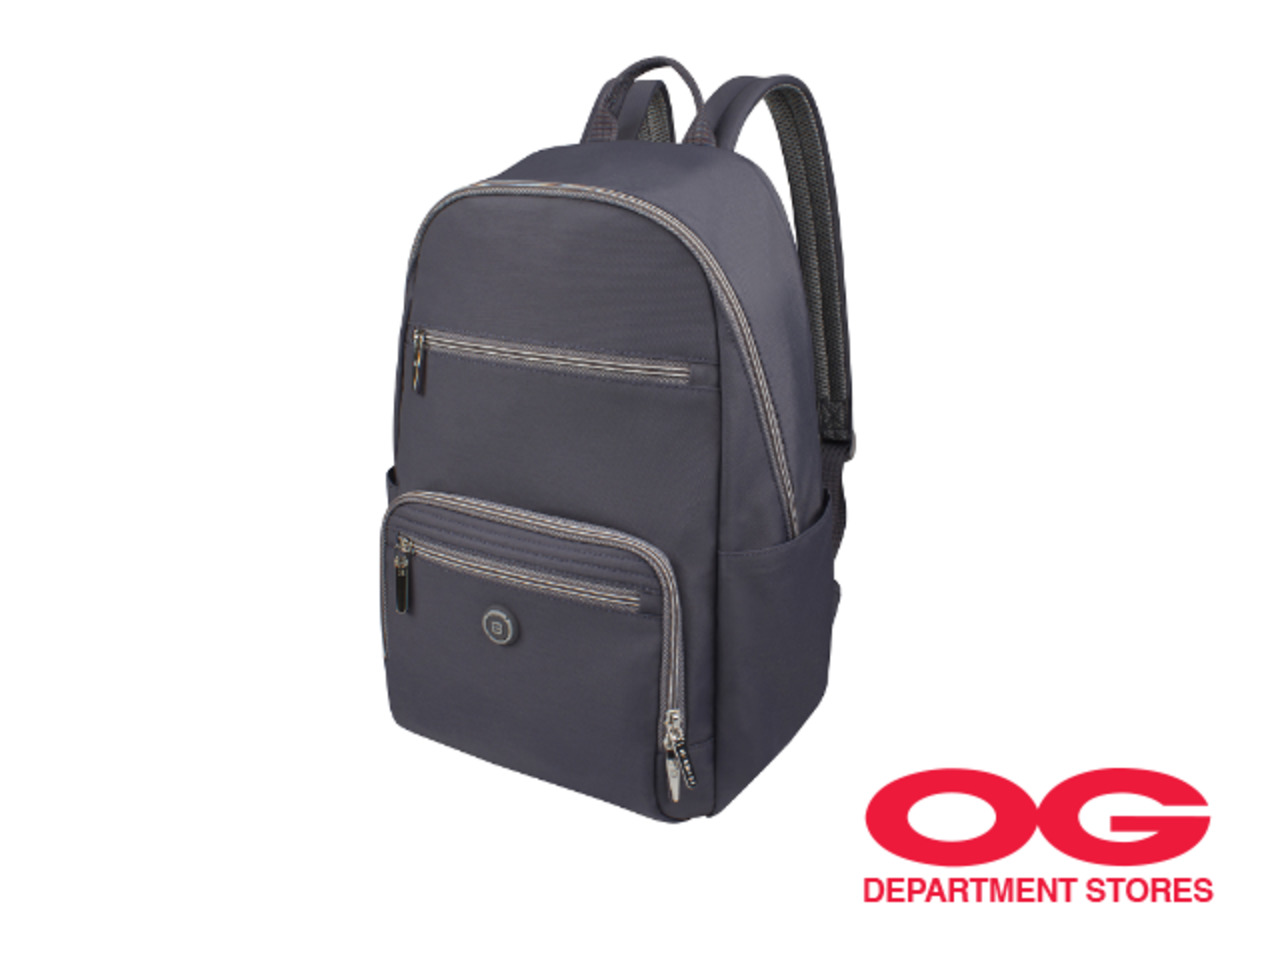 BESIDE-U BACKPACK @ 1st pc 30% off, 2nd pc $89